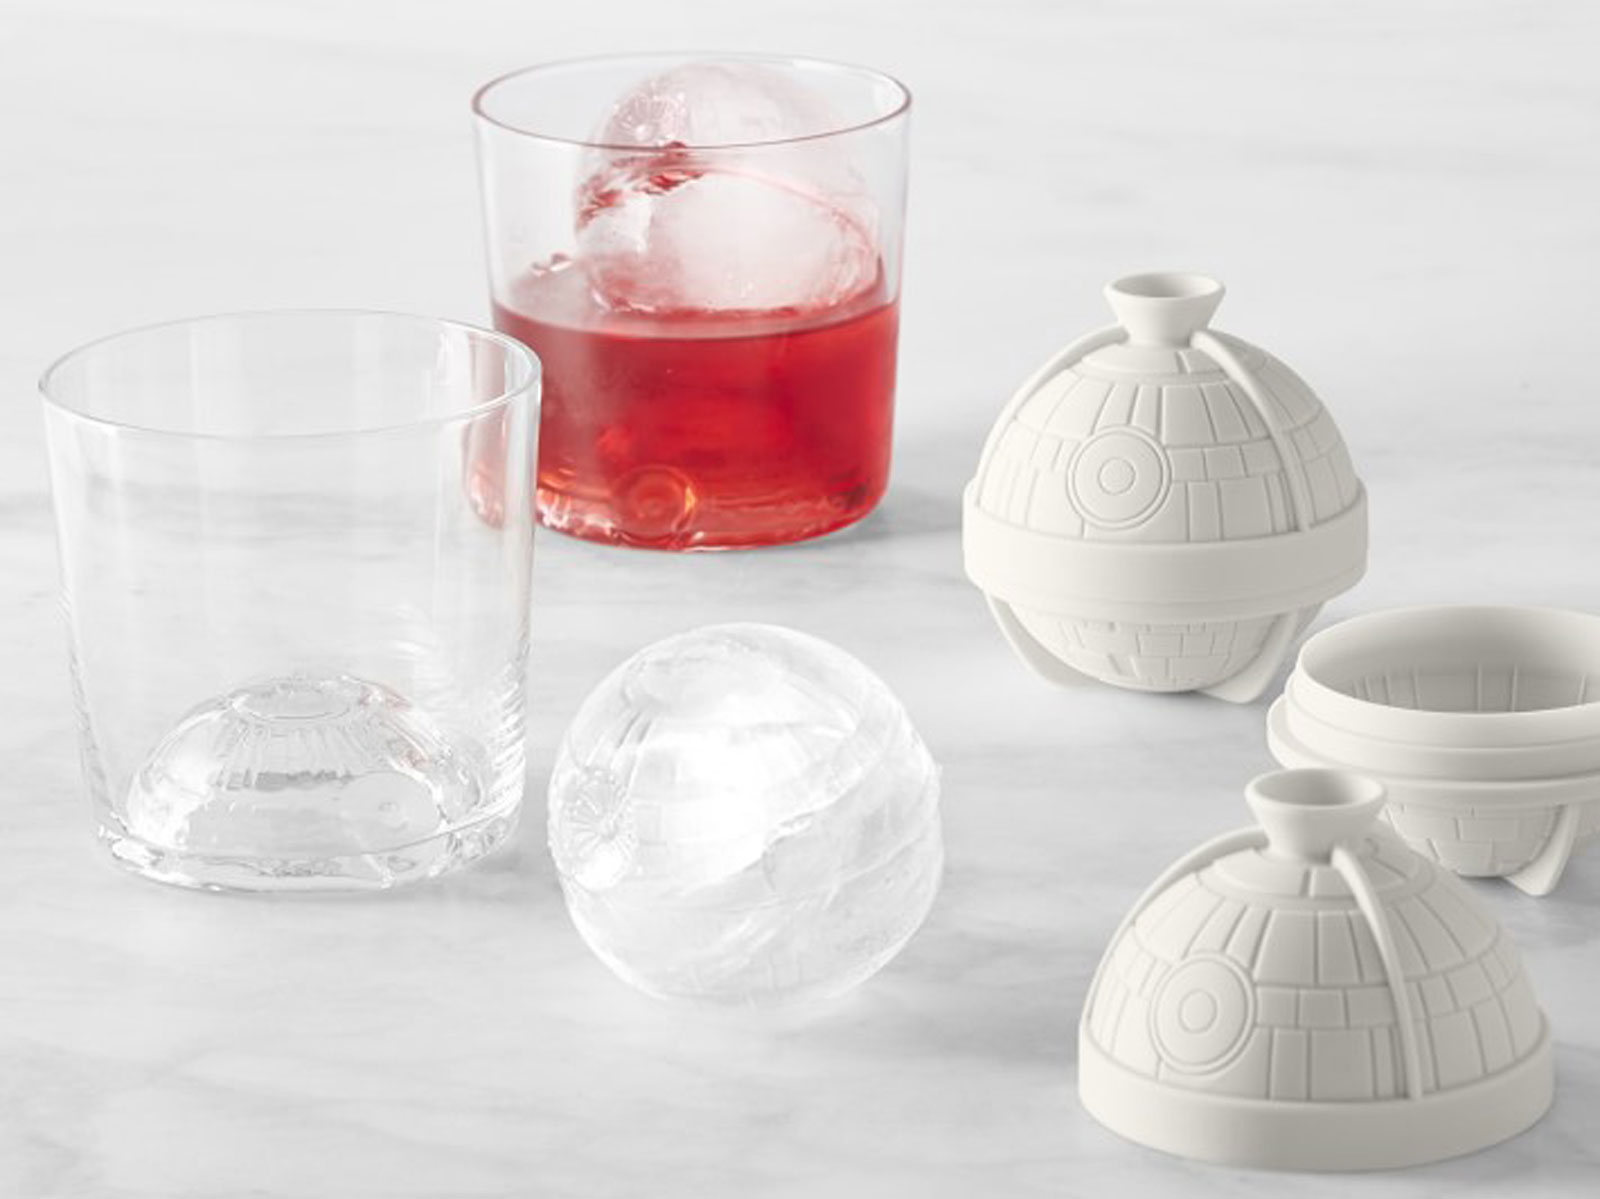 Star Wars ice molds